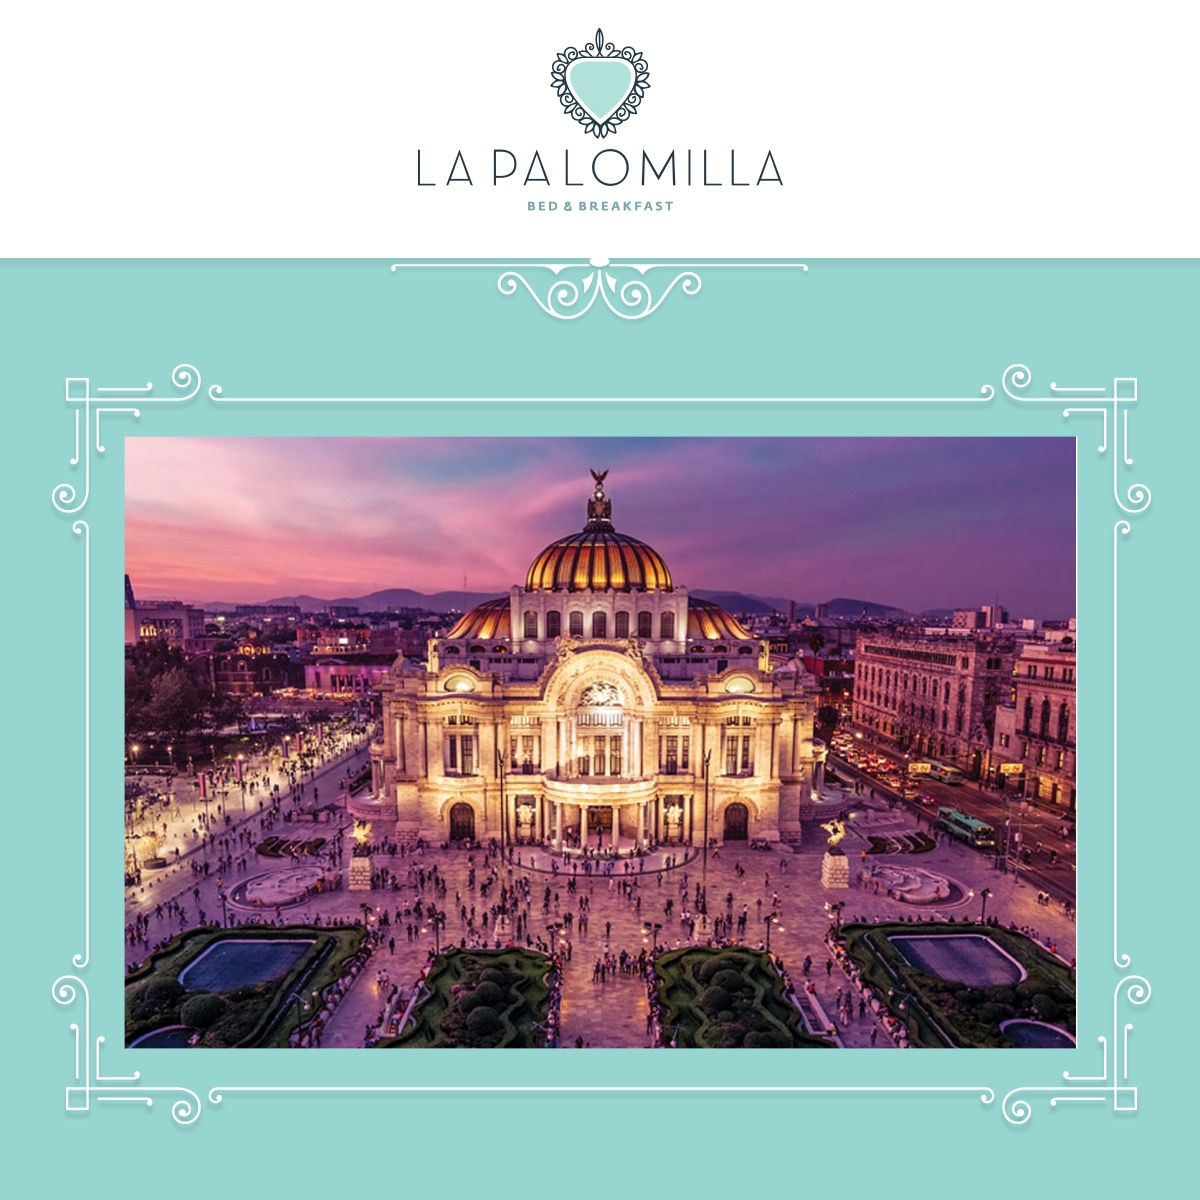 When you come to Mexico City, the Fine Arts Museum is a must-visit, as it's one of the most iconic and famous venues in town. Meantime, you can take a peek in a virtual tour. Enjoy! http://museopalaciodebellasartes.gob.mx/art-guide/  #History #Architecture  #BellasArtes   #Virtualtraveler  #cdmxpic.twitter.com/RWD6iKsEMS